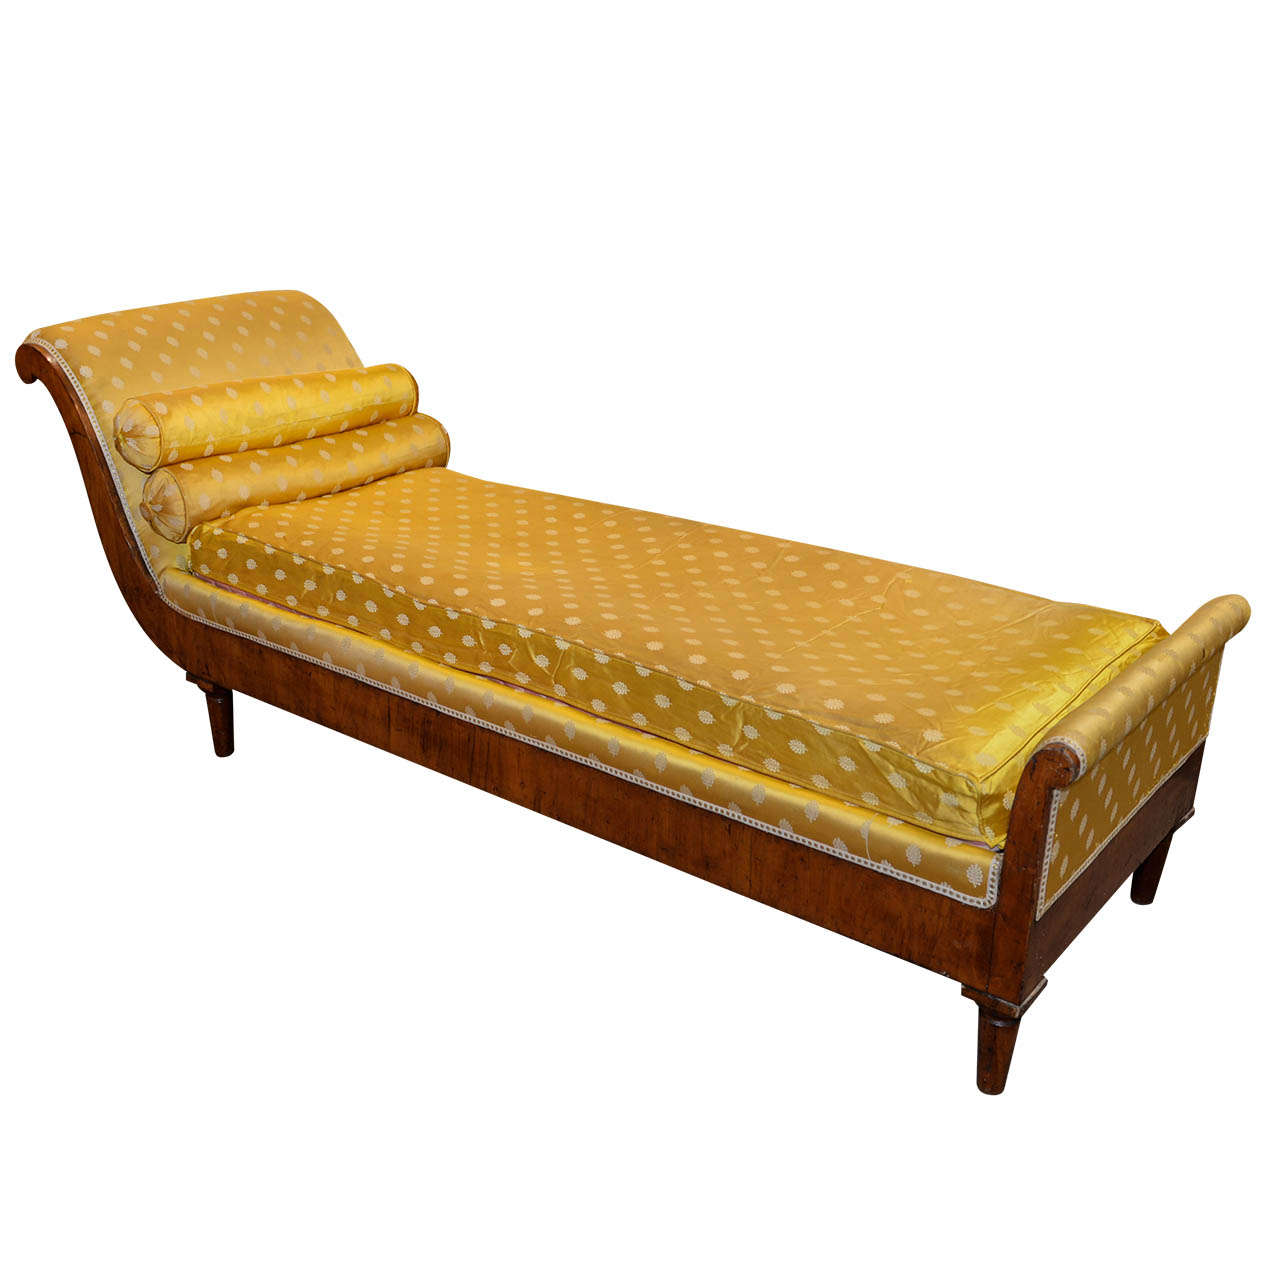 Directoire style chaises lounge at 1stdibs for Chaise directoire